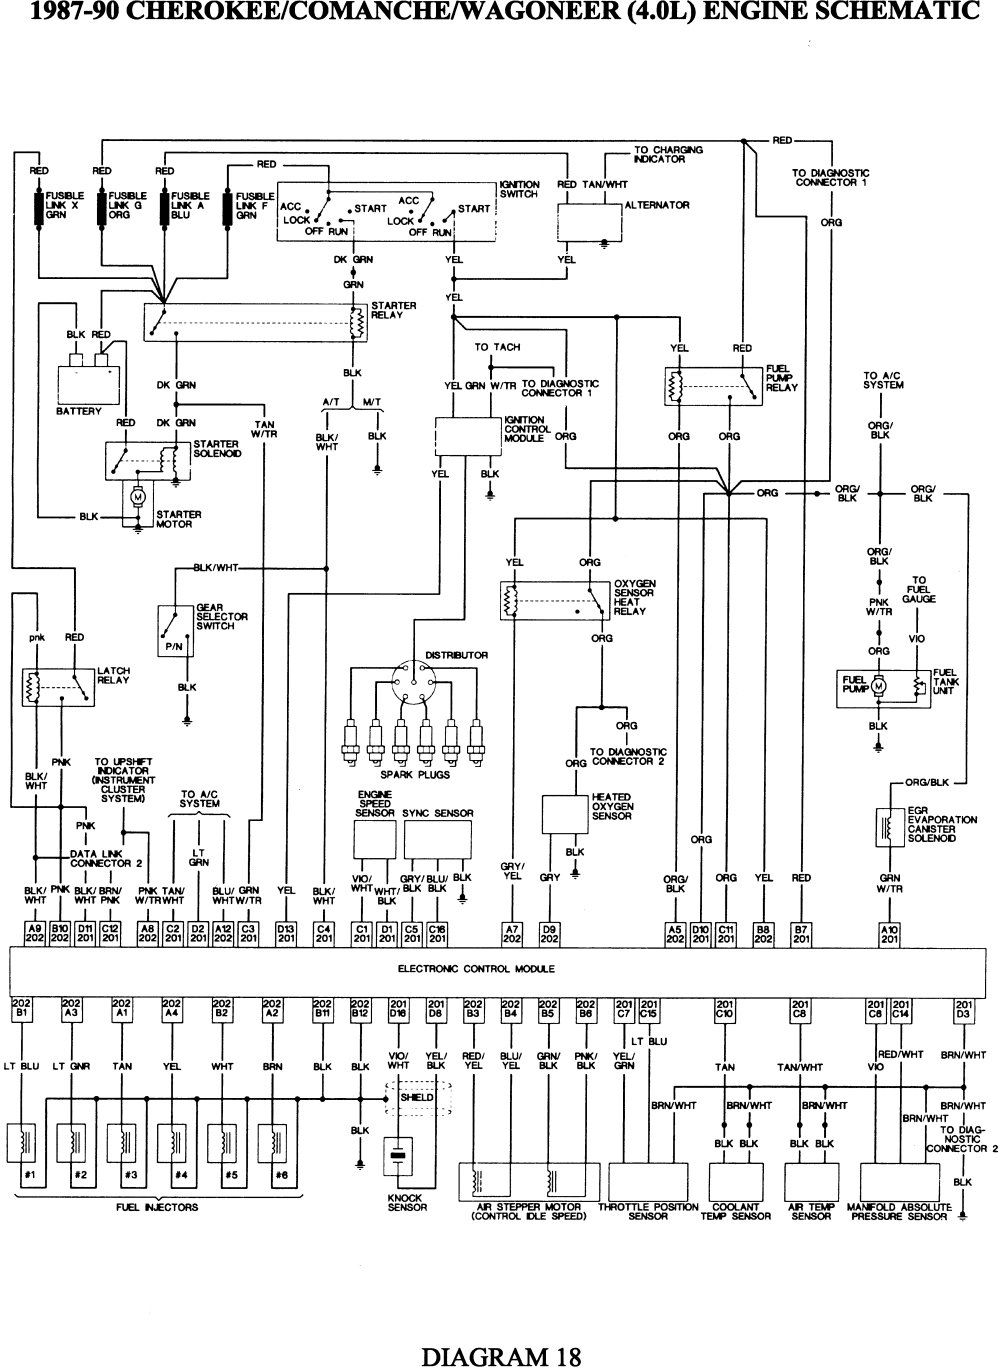 hight resolution of wire diagram 86 jeep mj wiring diagram schematic 1991 jeep comanche engine diagram wiring diagram schematic